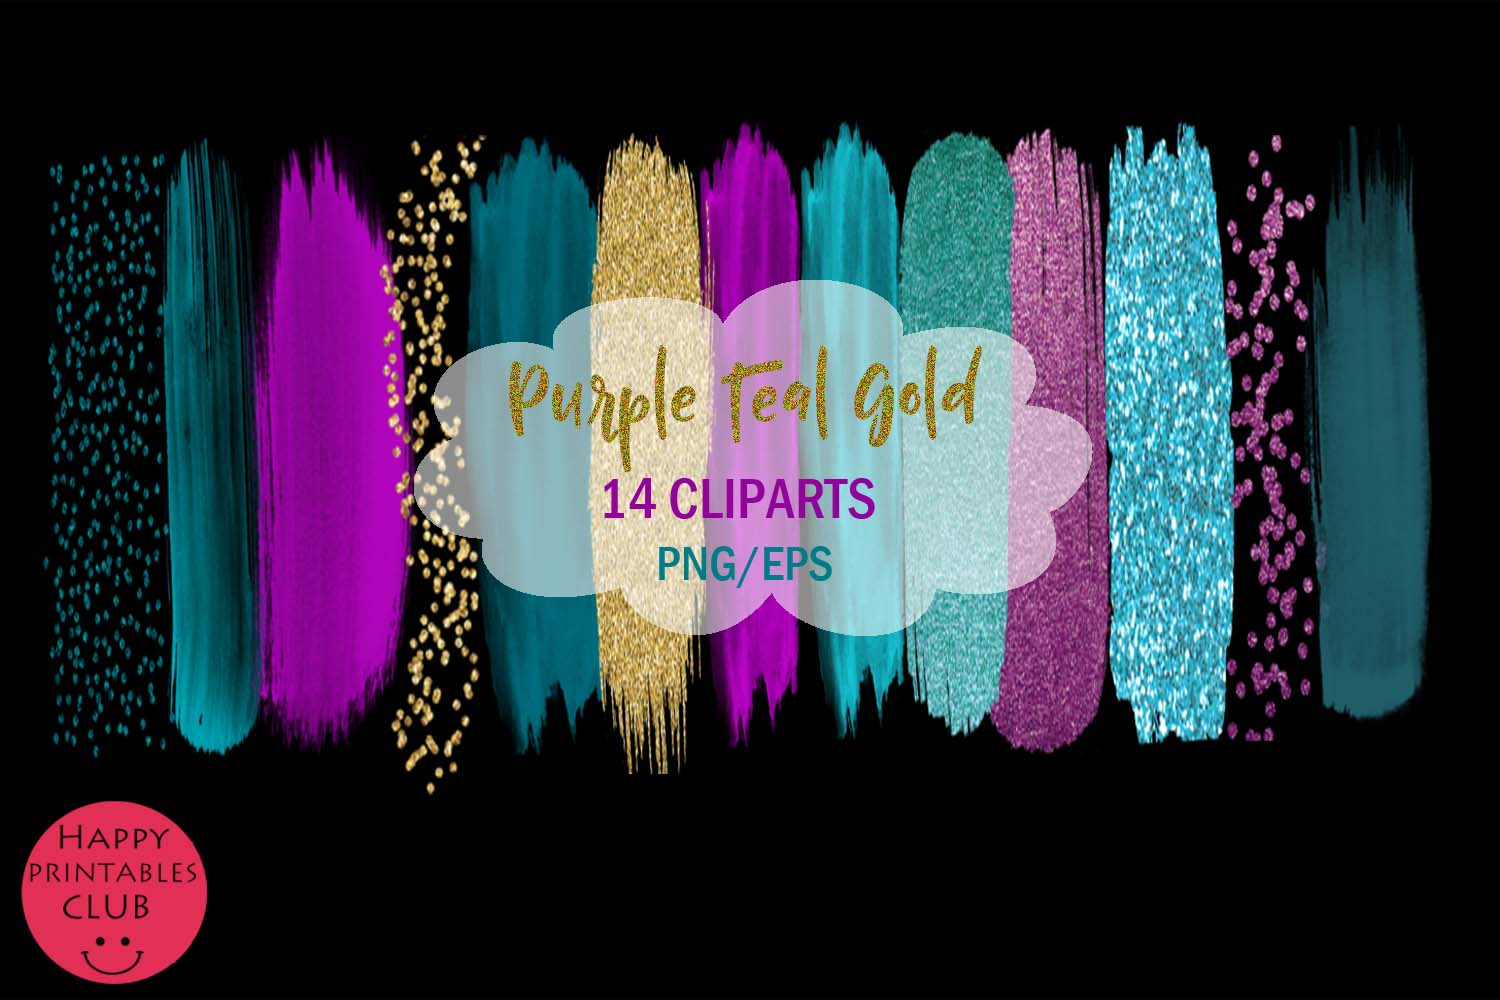 Purple Teal Gold Brush Strokes Clipart-Clipart Brush Stroke example image 2